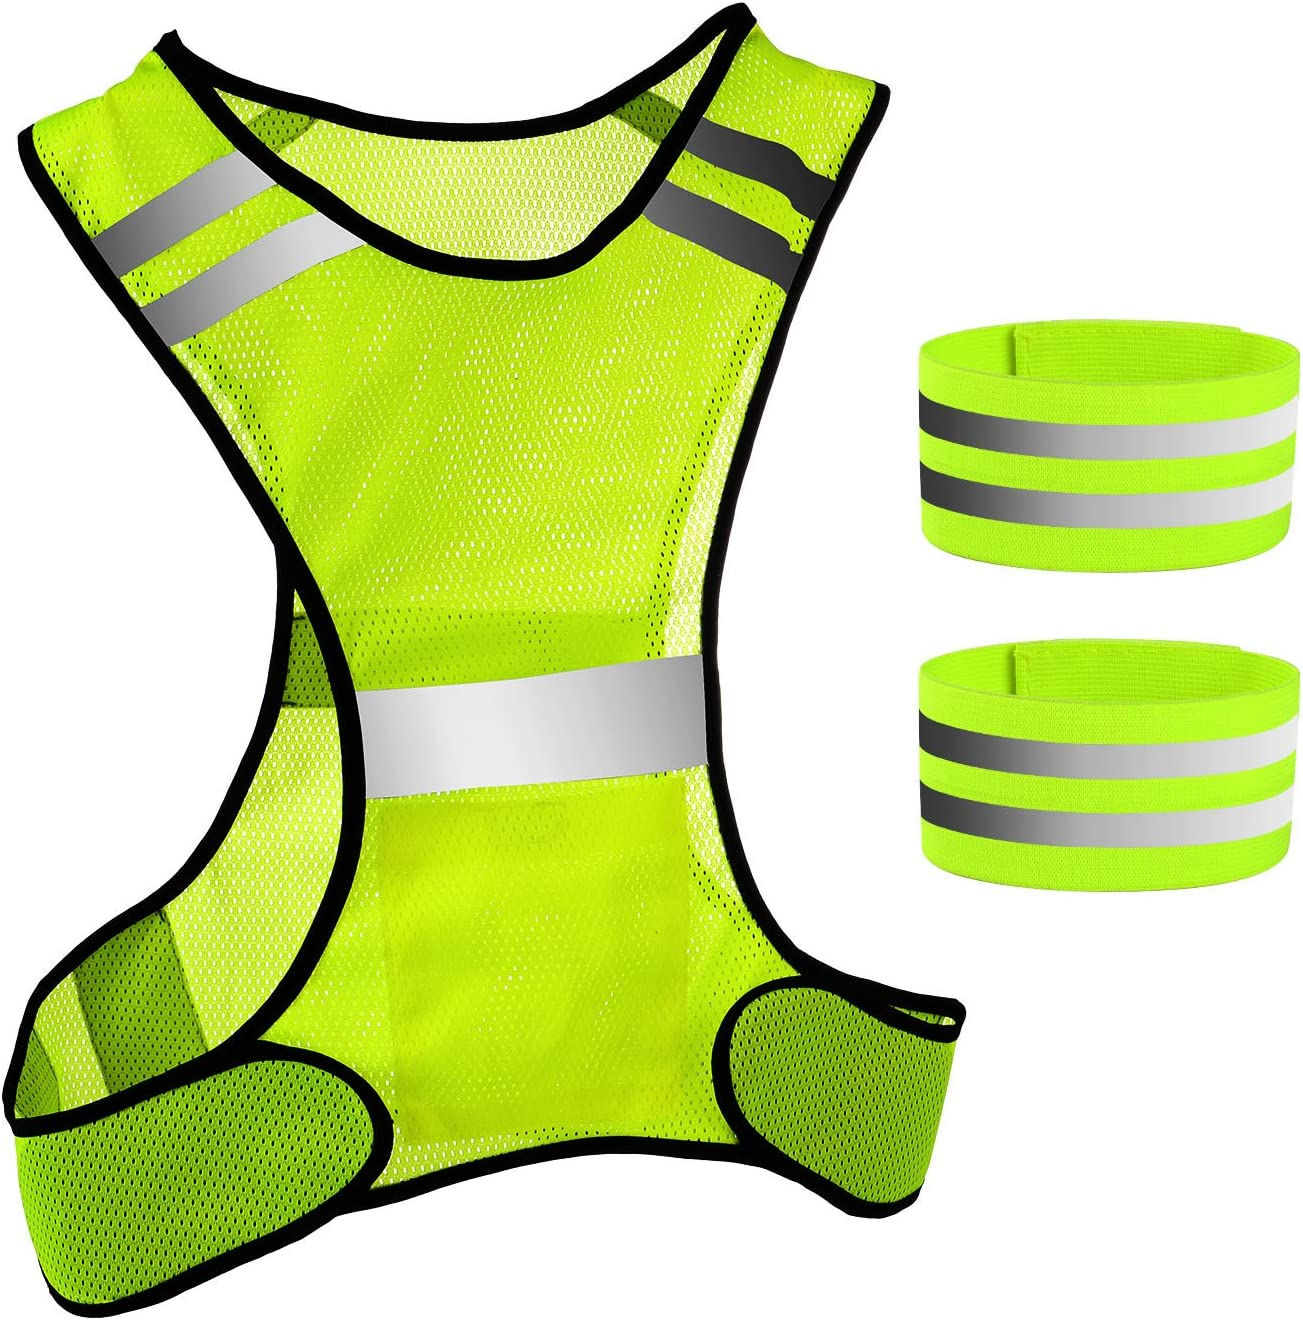 Pangda High Visibility Safety Vest with Reflective Strap and Reflective Armbands Wristbands for Night Walk Running Dog Walking Motorcycling